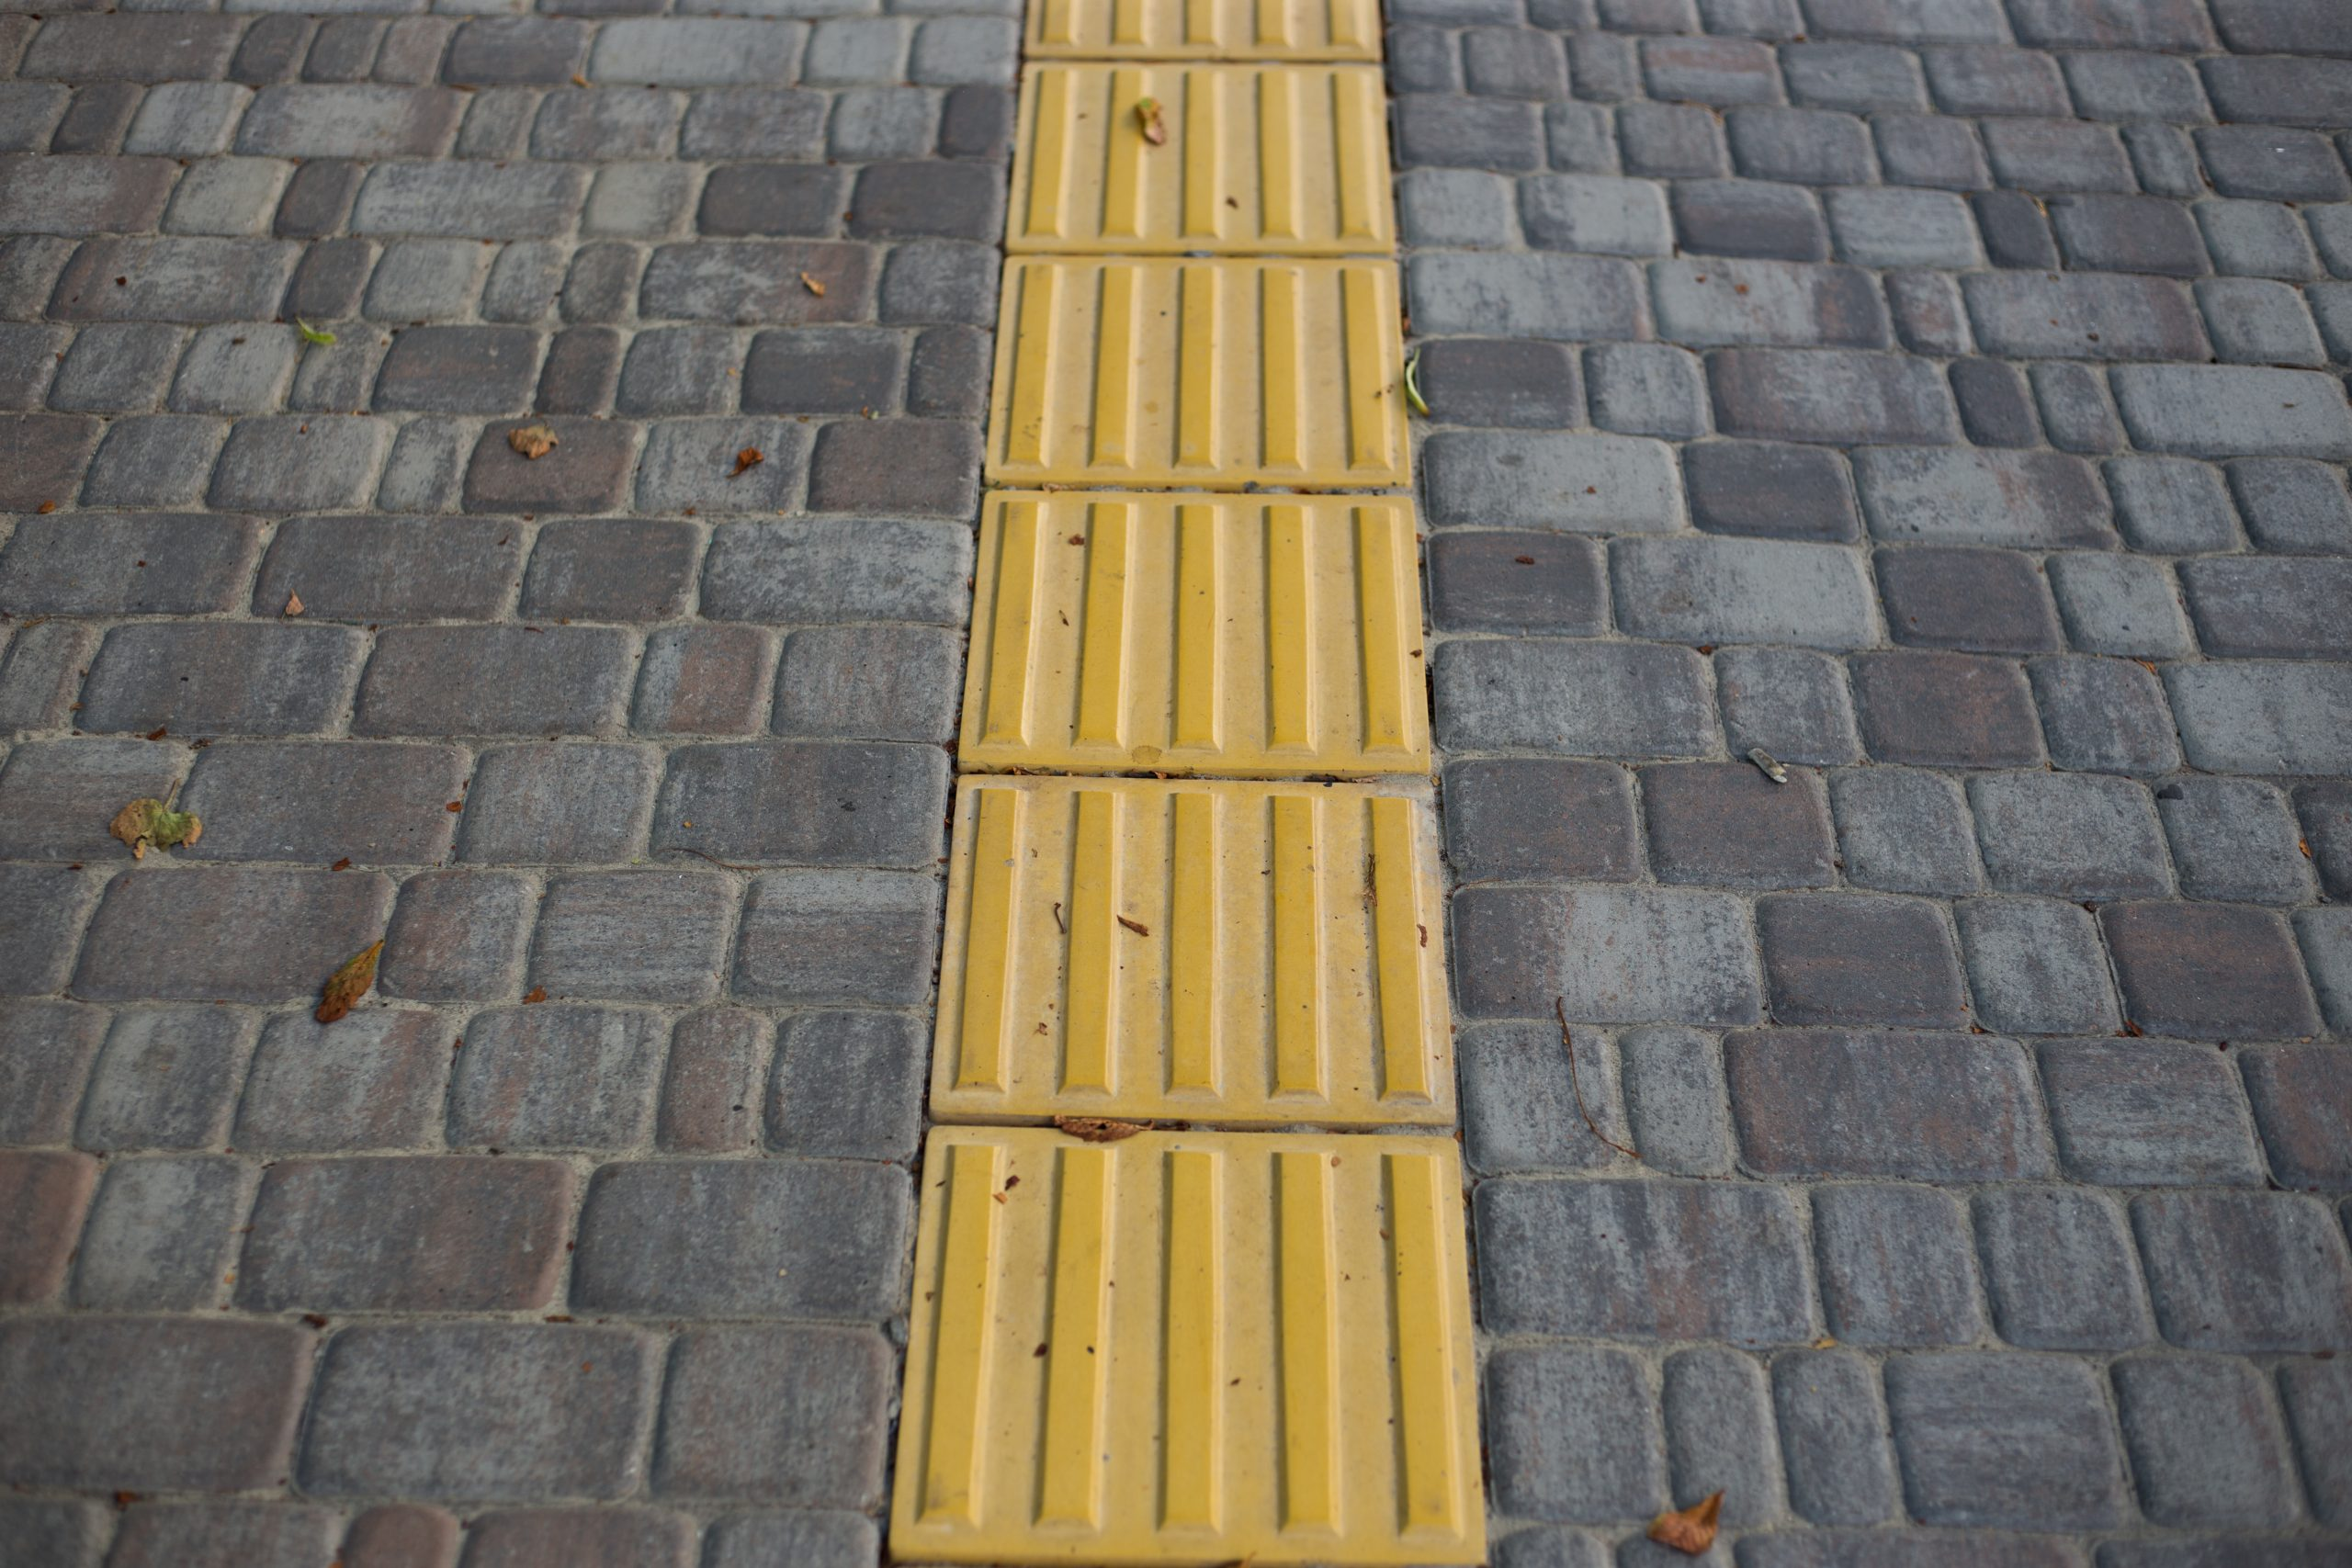 the picture shows a grey pavement. In the middle there are yellow warning tiles for visually impaired users.